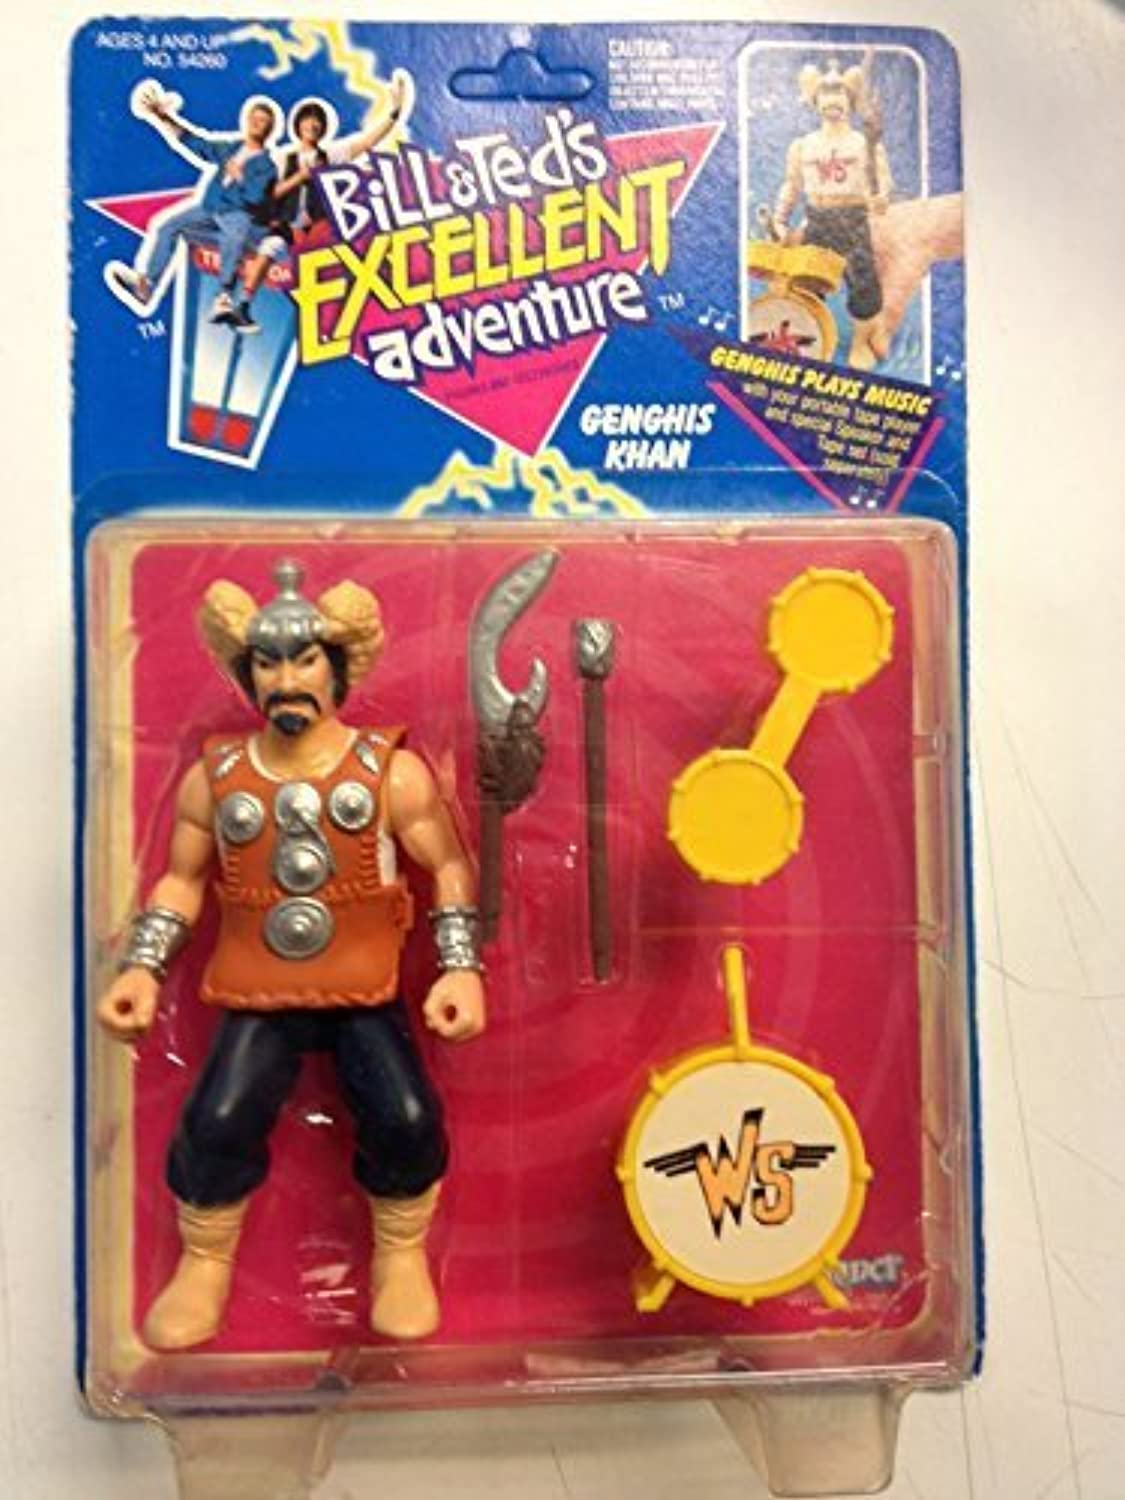 Bill & Ted's Excellent Adventure Genghis Khan Figure MOC 1991 Kenner by Bill and Ted's Excellent Adventure